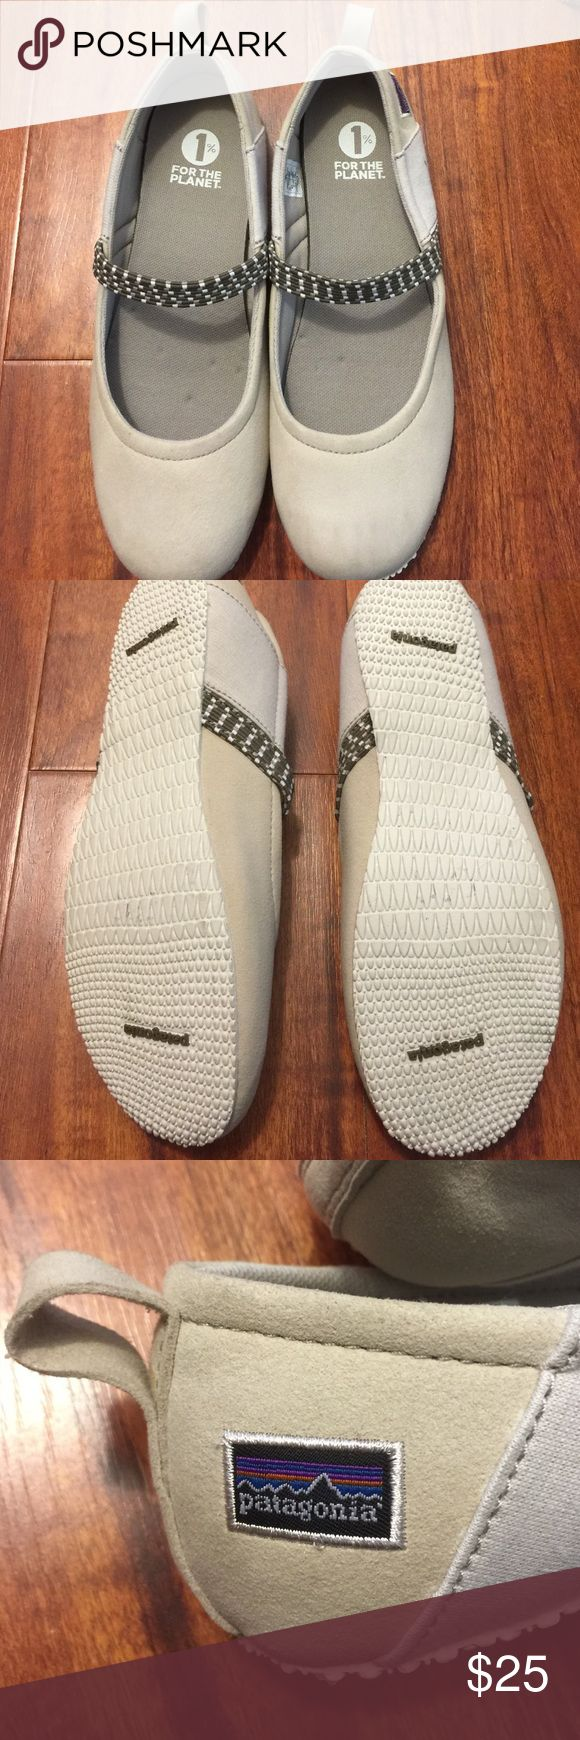 Patagonia 1% for the Planet MJ  Flat Shoes S 10 Patagonia for the Planet flat shoes, women size 10,  New never worn. Patagonia Shoes Flats & Loafers